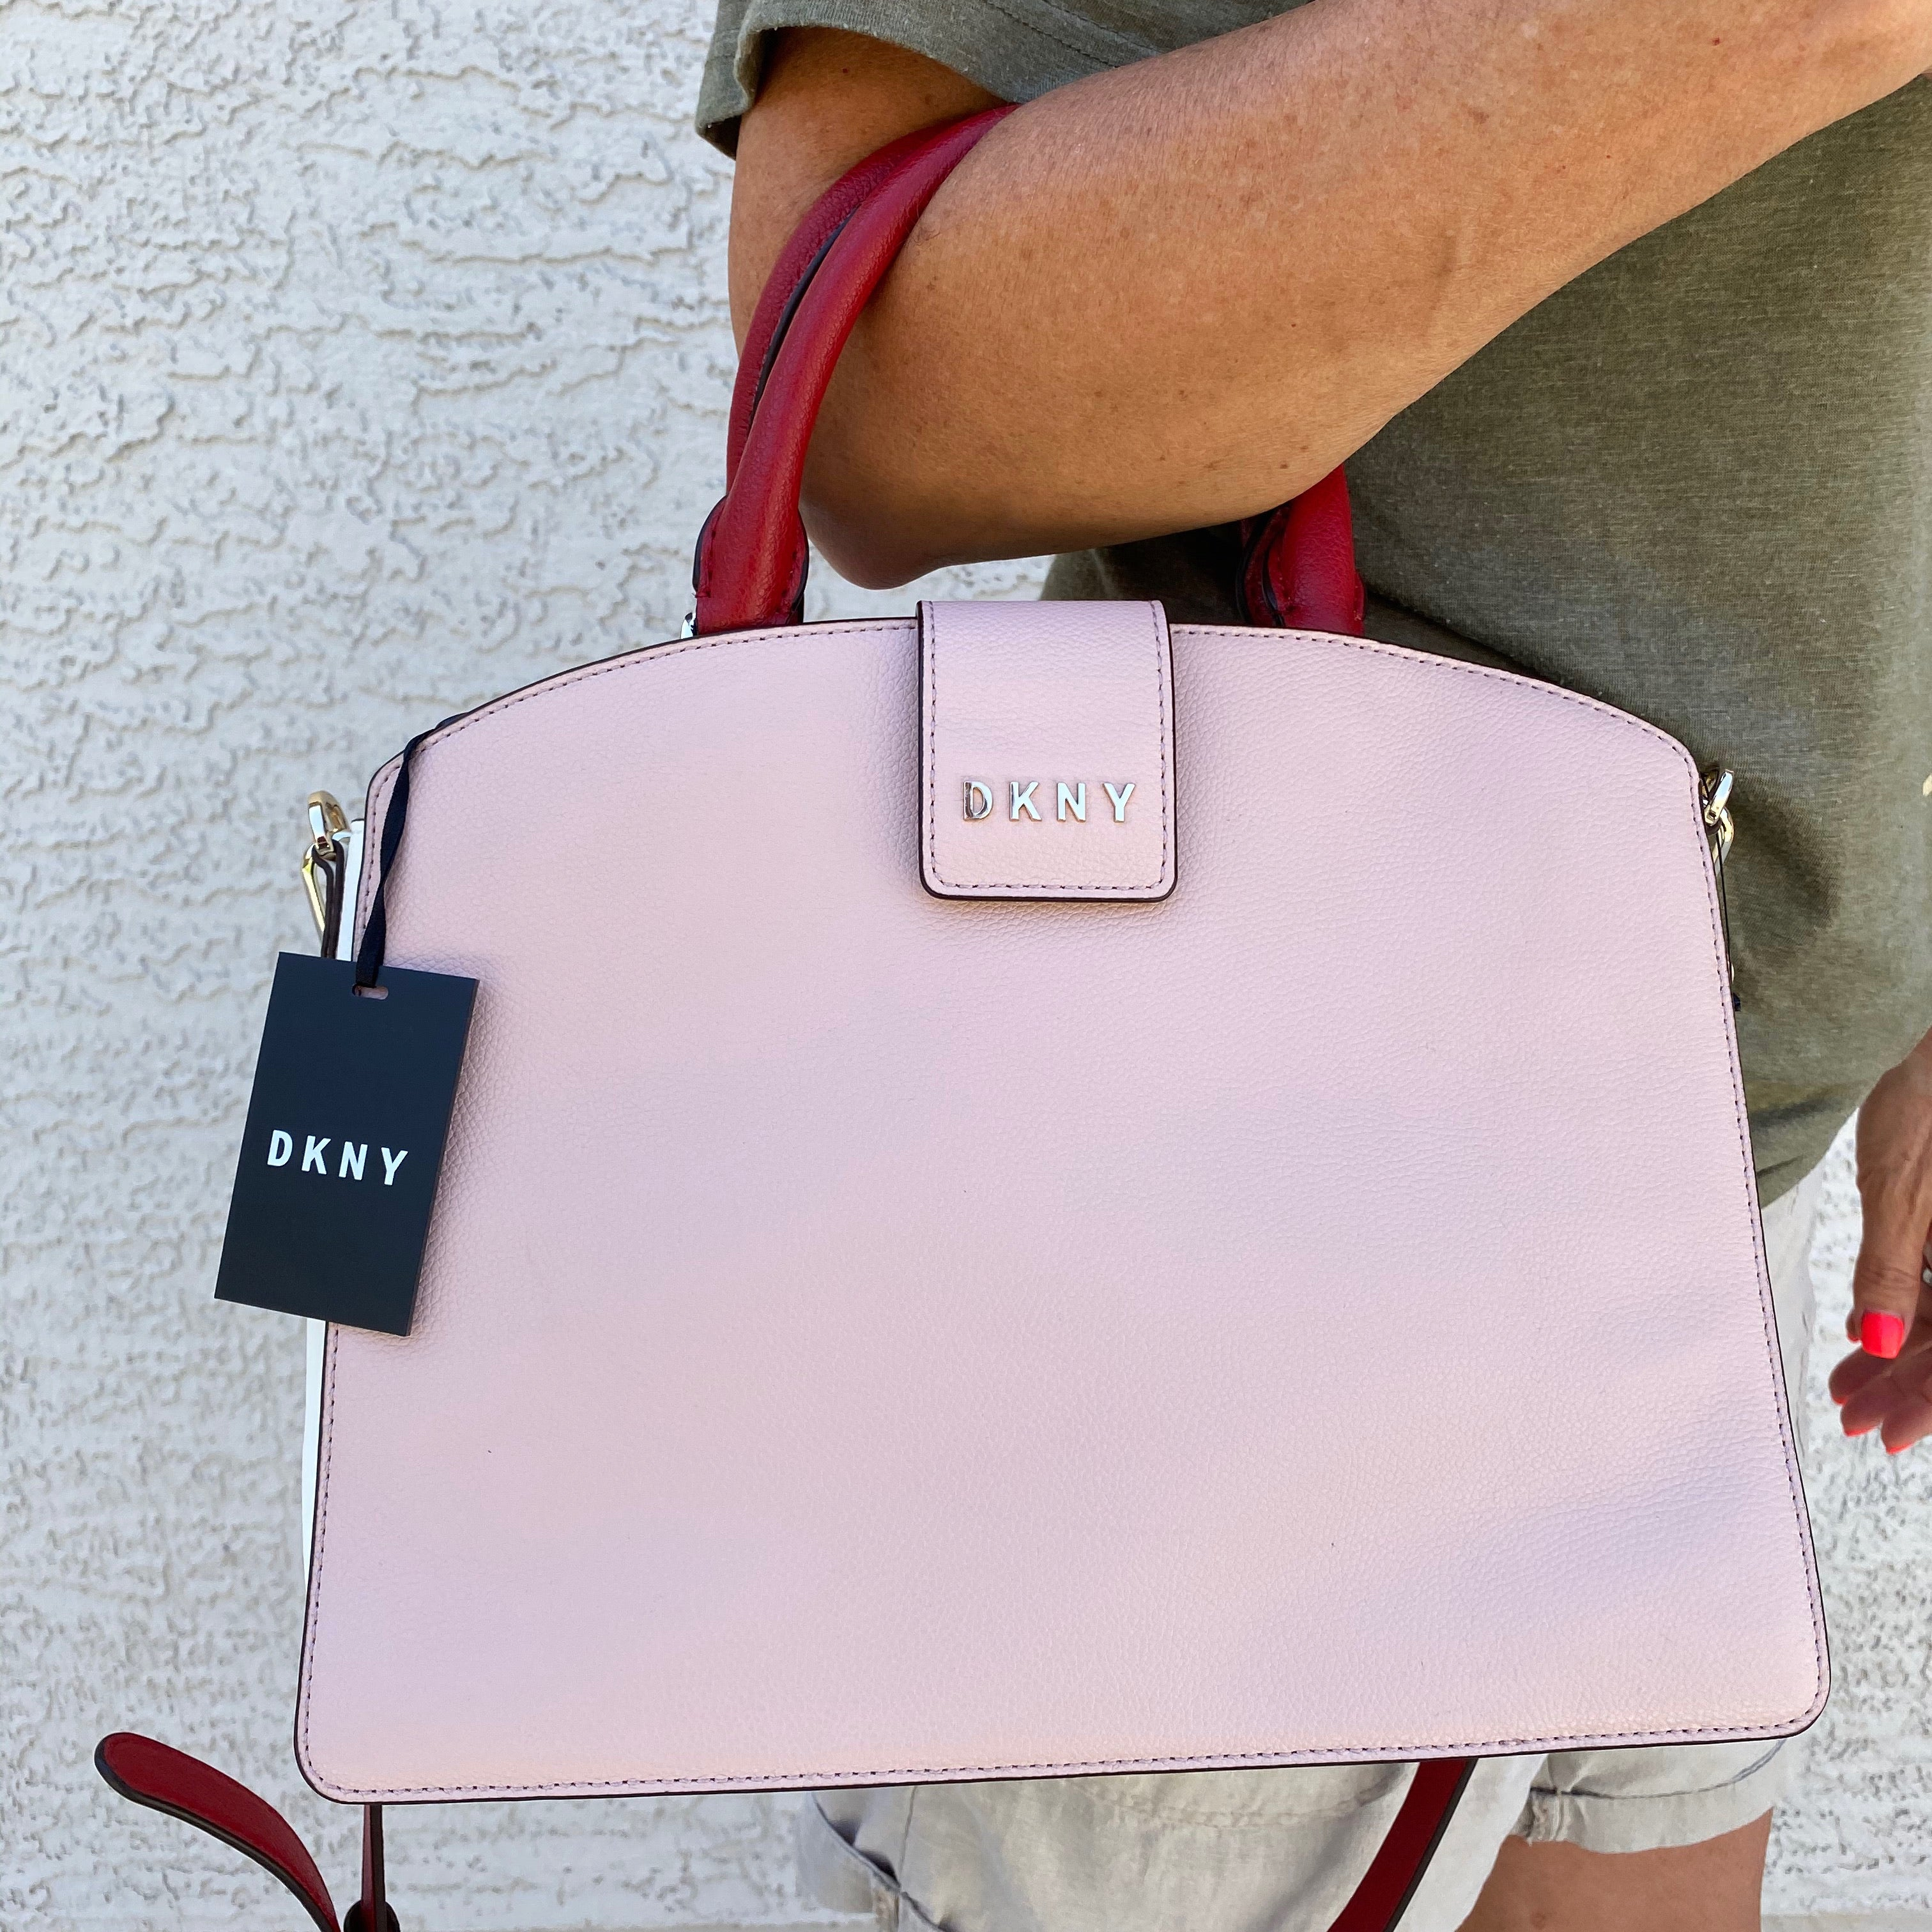 DKNY Clara Leather Satchel Crossbody Bag